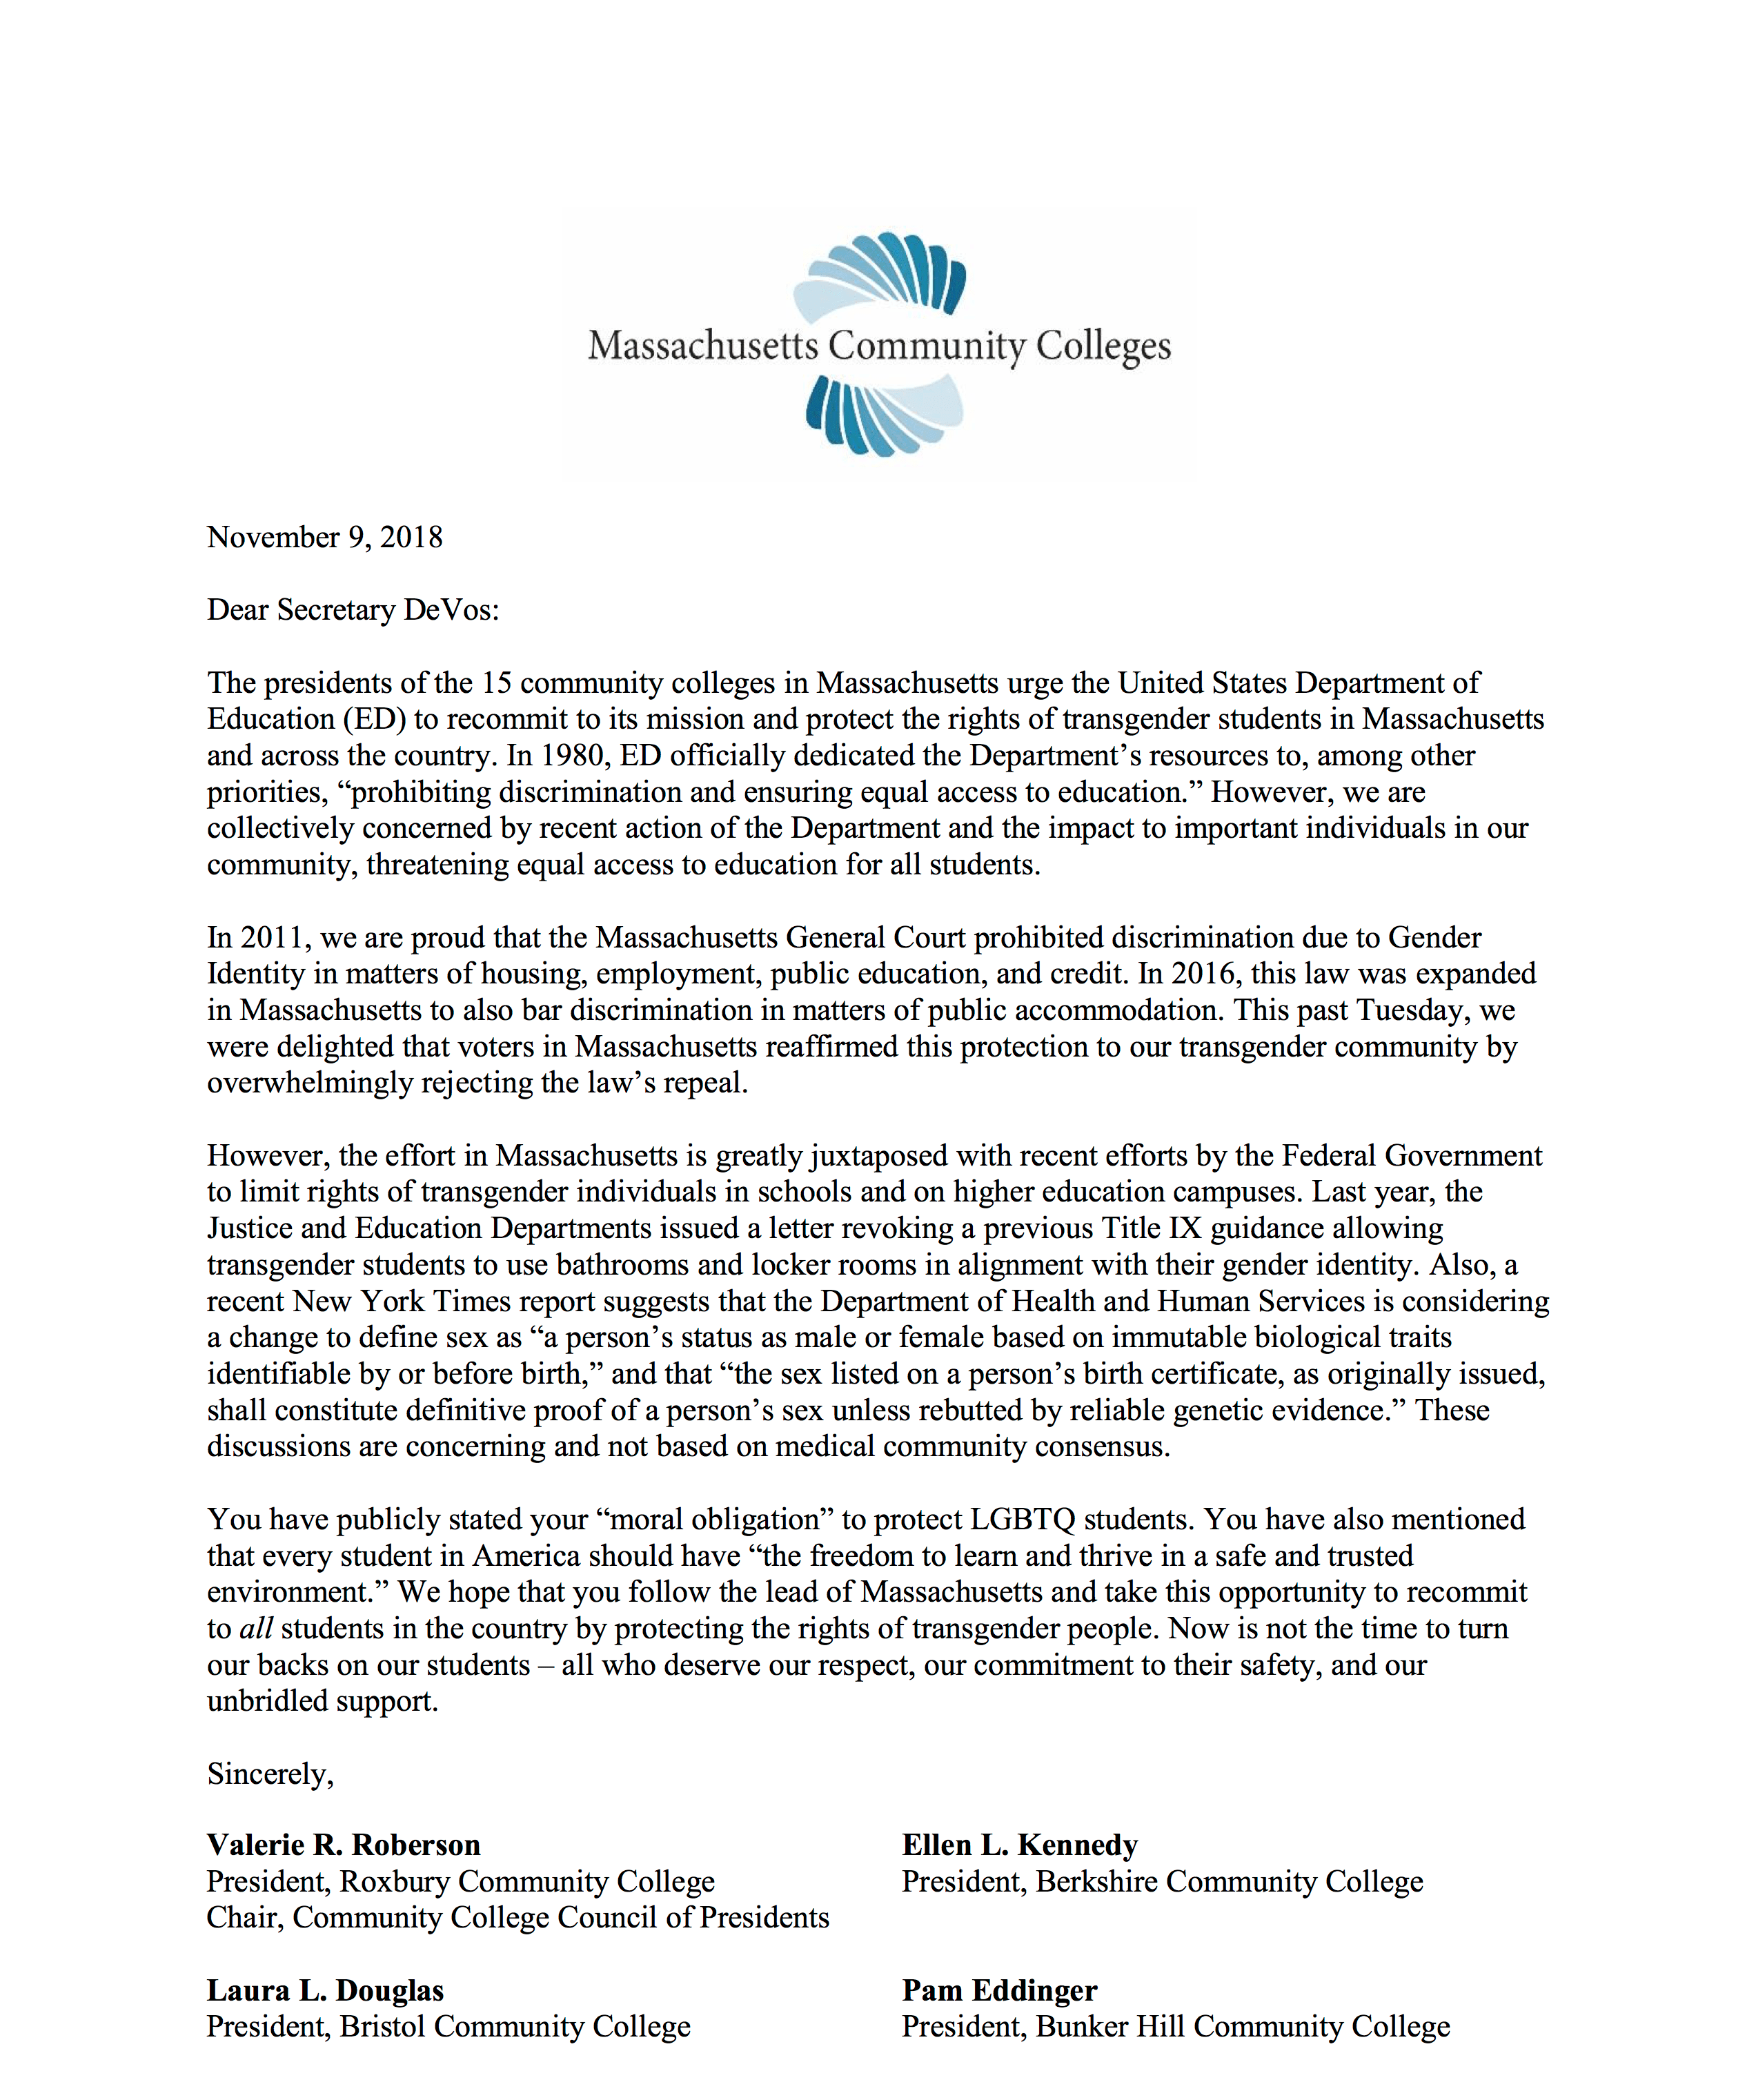 open-letter-to-secretary-devos-from-ma-community-college-presidents_11-9-18.png